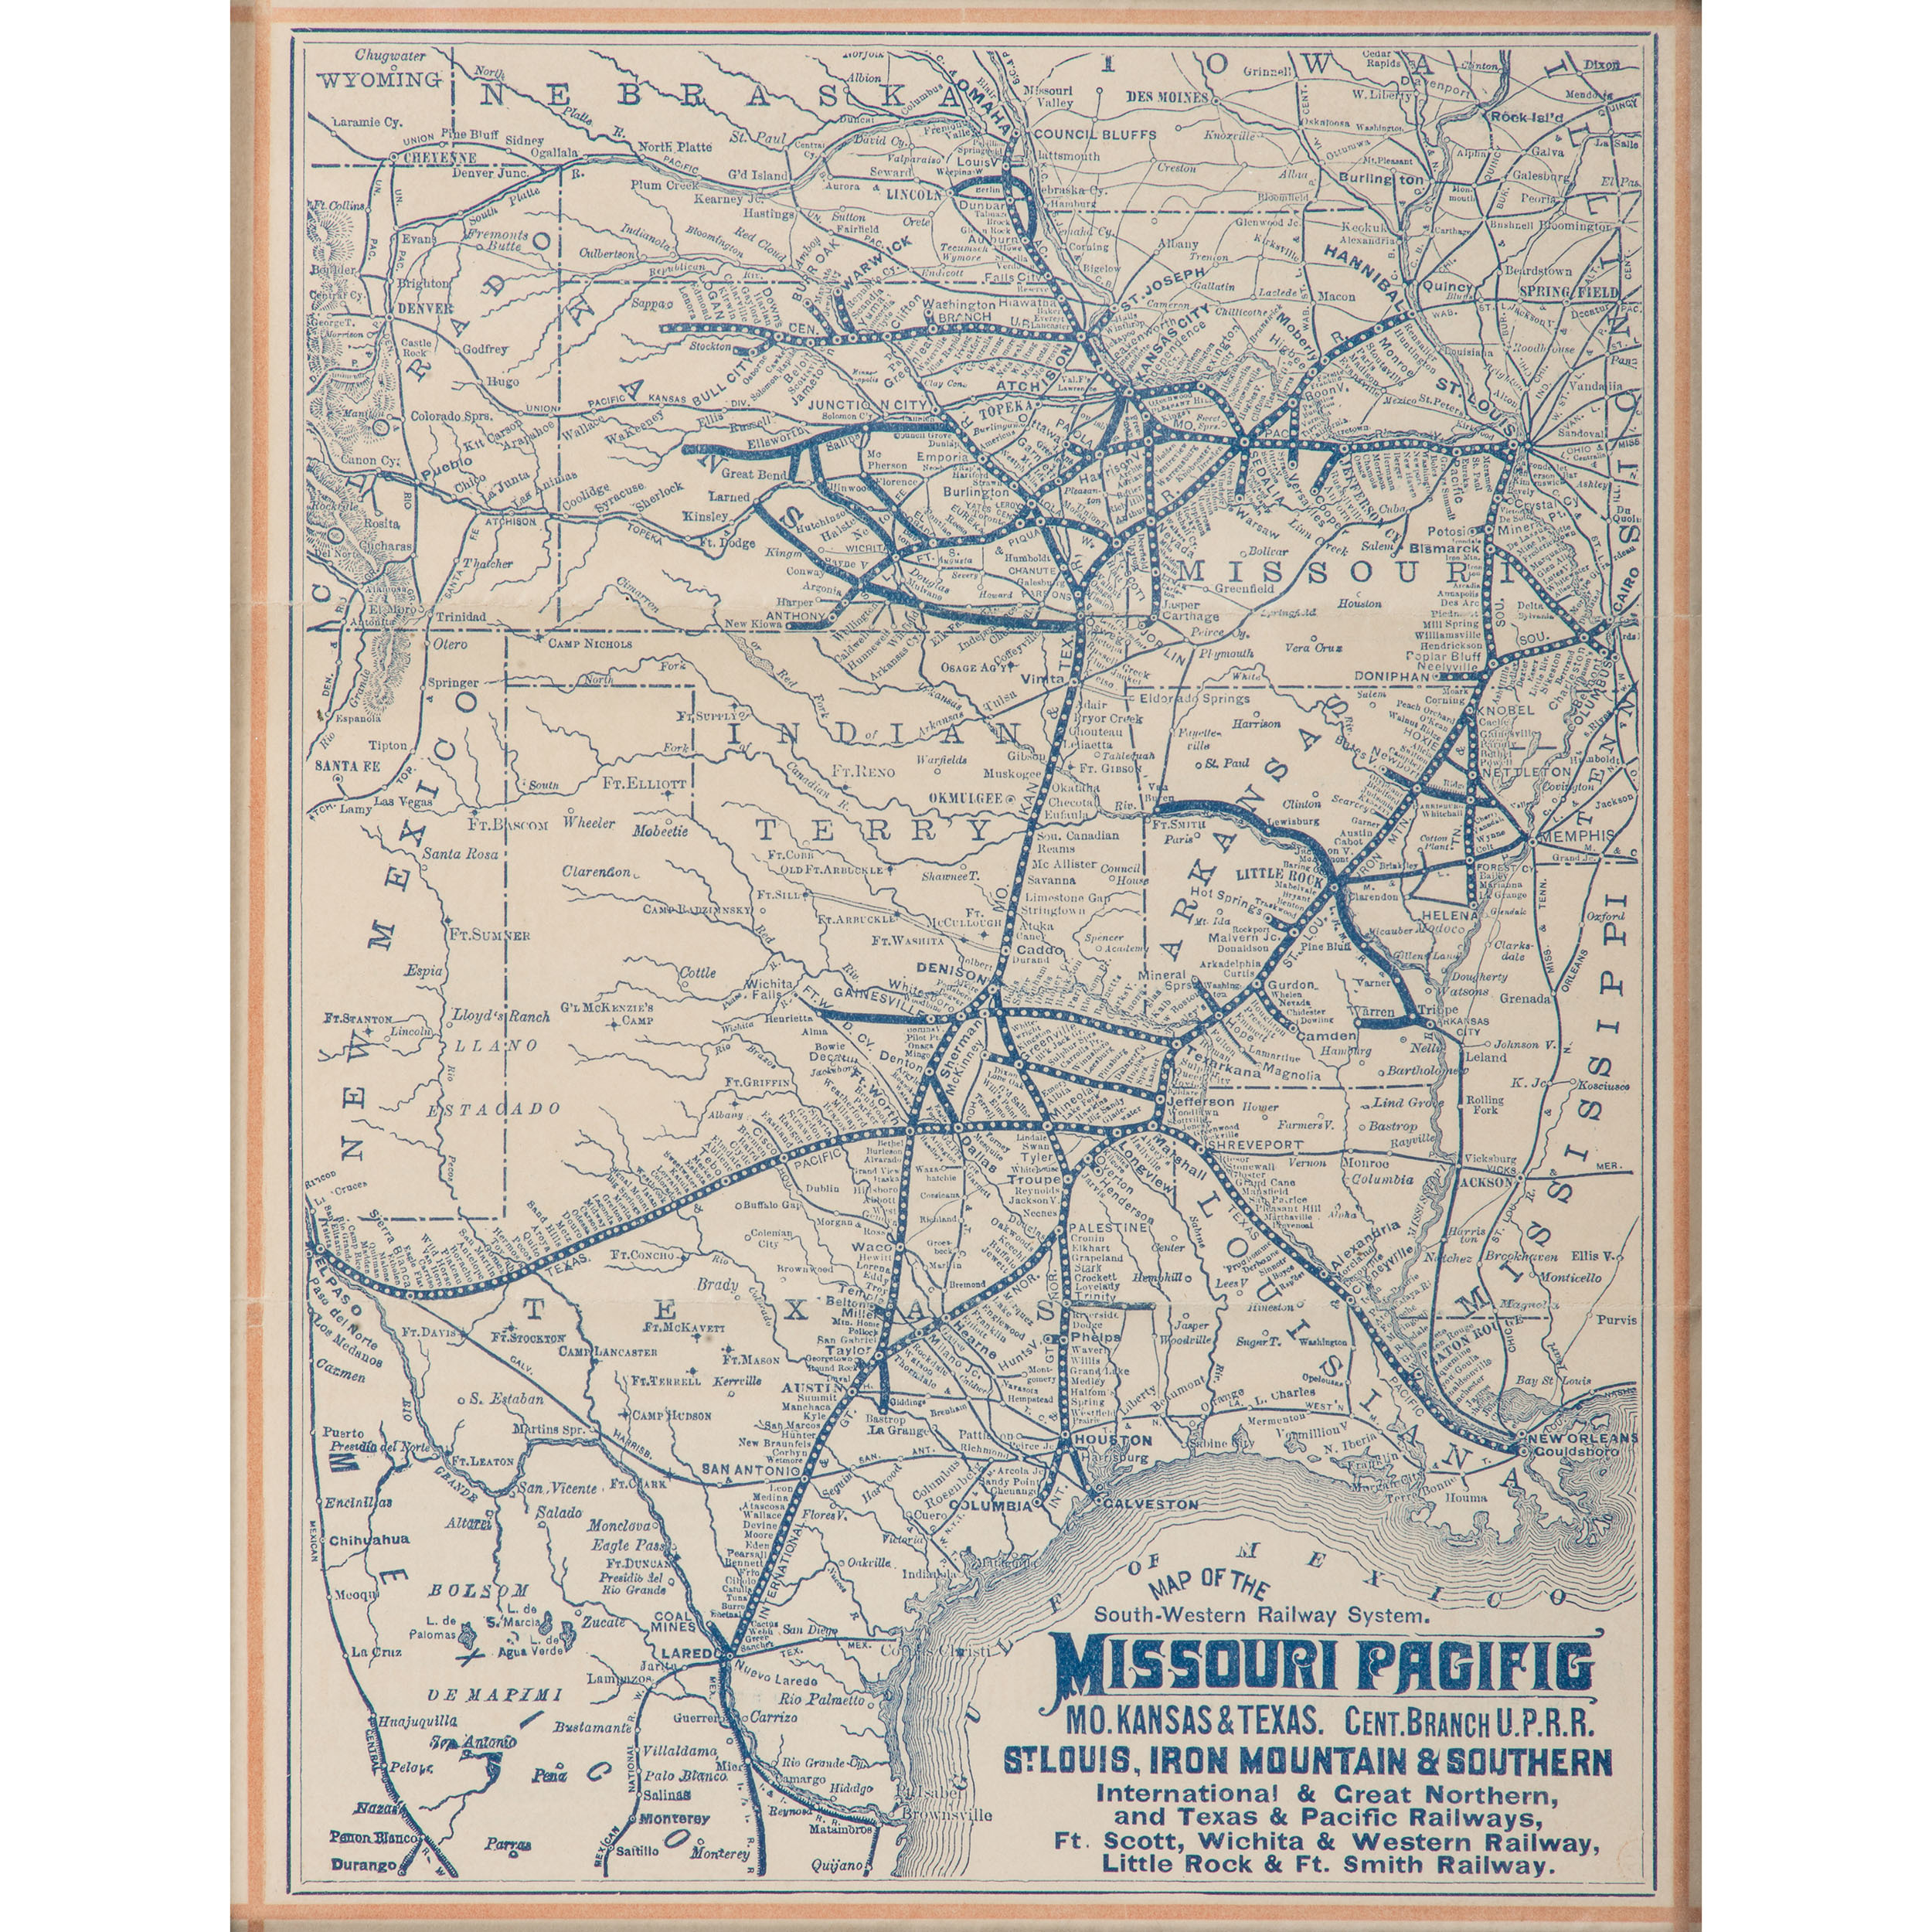 Two Rare Railroad Maps from the Union Pacific and Missouri ... Union Pacific Railroad Map Utah on union pacific business cars, union pacific idaho map, union pacific service map, rio grande railroad map utah, map of utah, union pacific rail map, union pacific train routes, gold spike utah, union pacific passenger trains, usgs map utah, union pacific dome car, union pacific track map, union pacific overland, union pacific network map, union pacific salt lake city, union pacific railway map, union pacific elko nv, union pacific nebraska, union pacific dining car menus, union pacific subdivisions map,